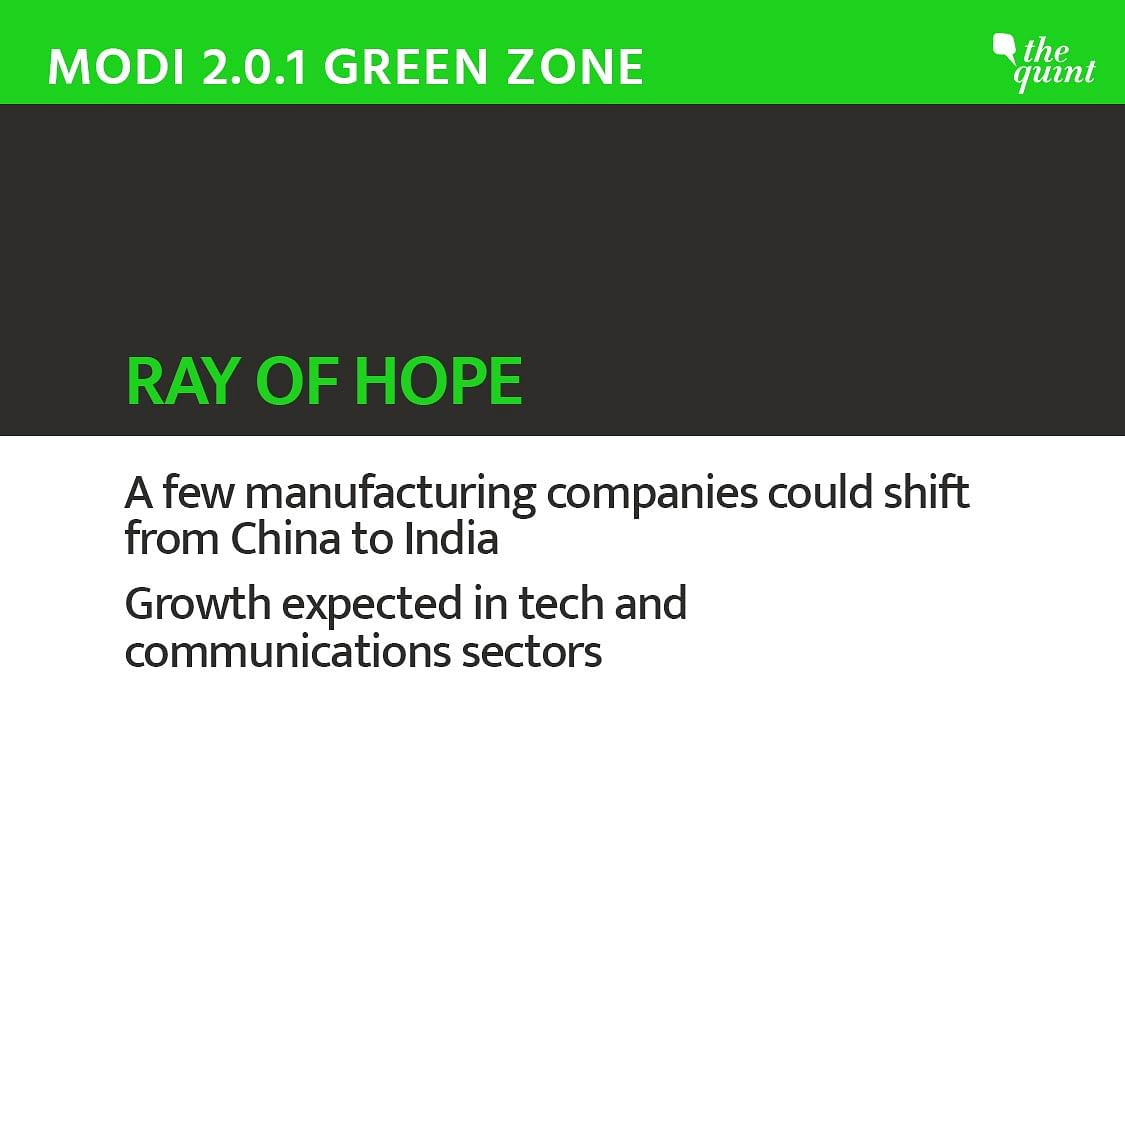 Companies shifting from China might give India a ray of hope.